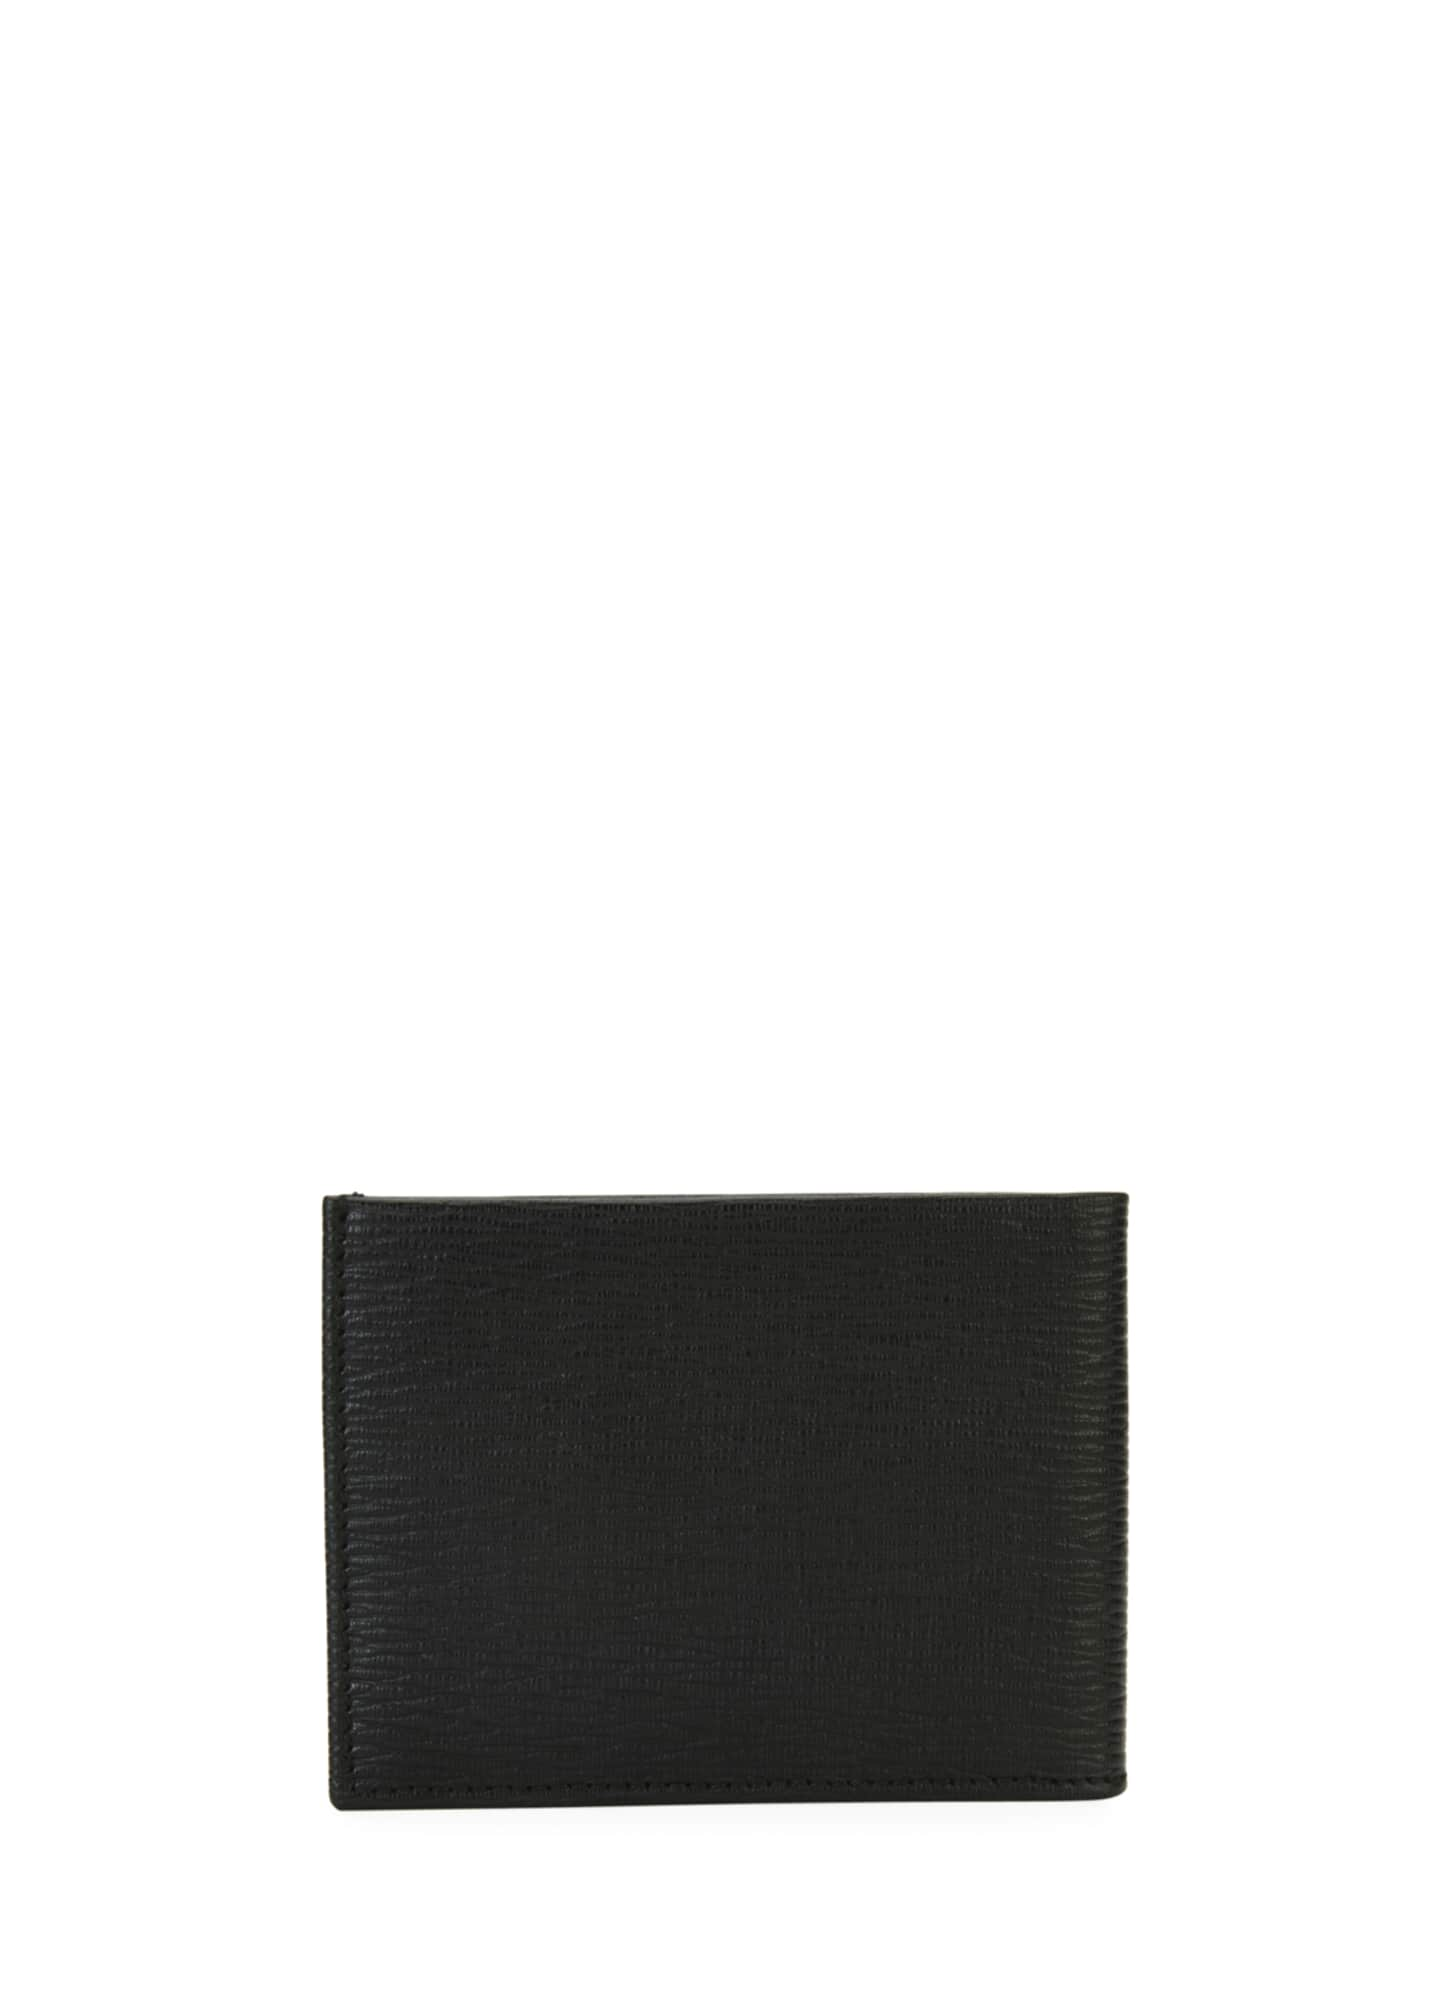 Image 3 of 3: Men's Revival Gancini Bi-Fold Leather Wallet, Black/Red